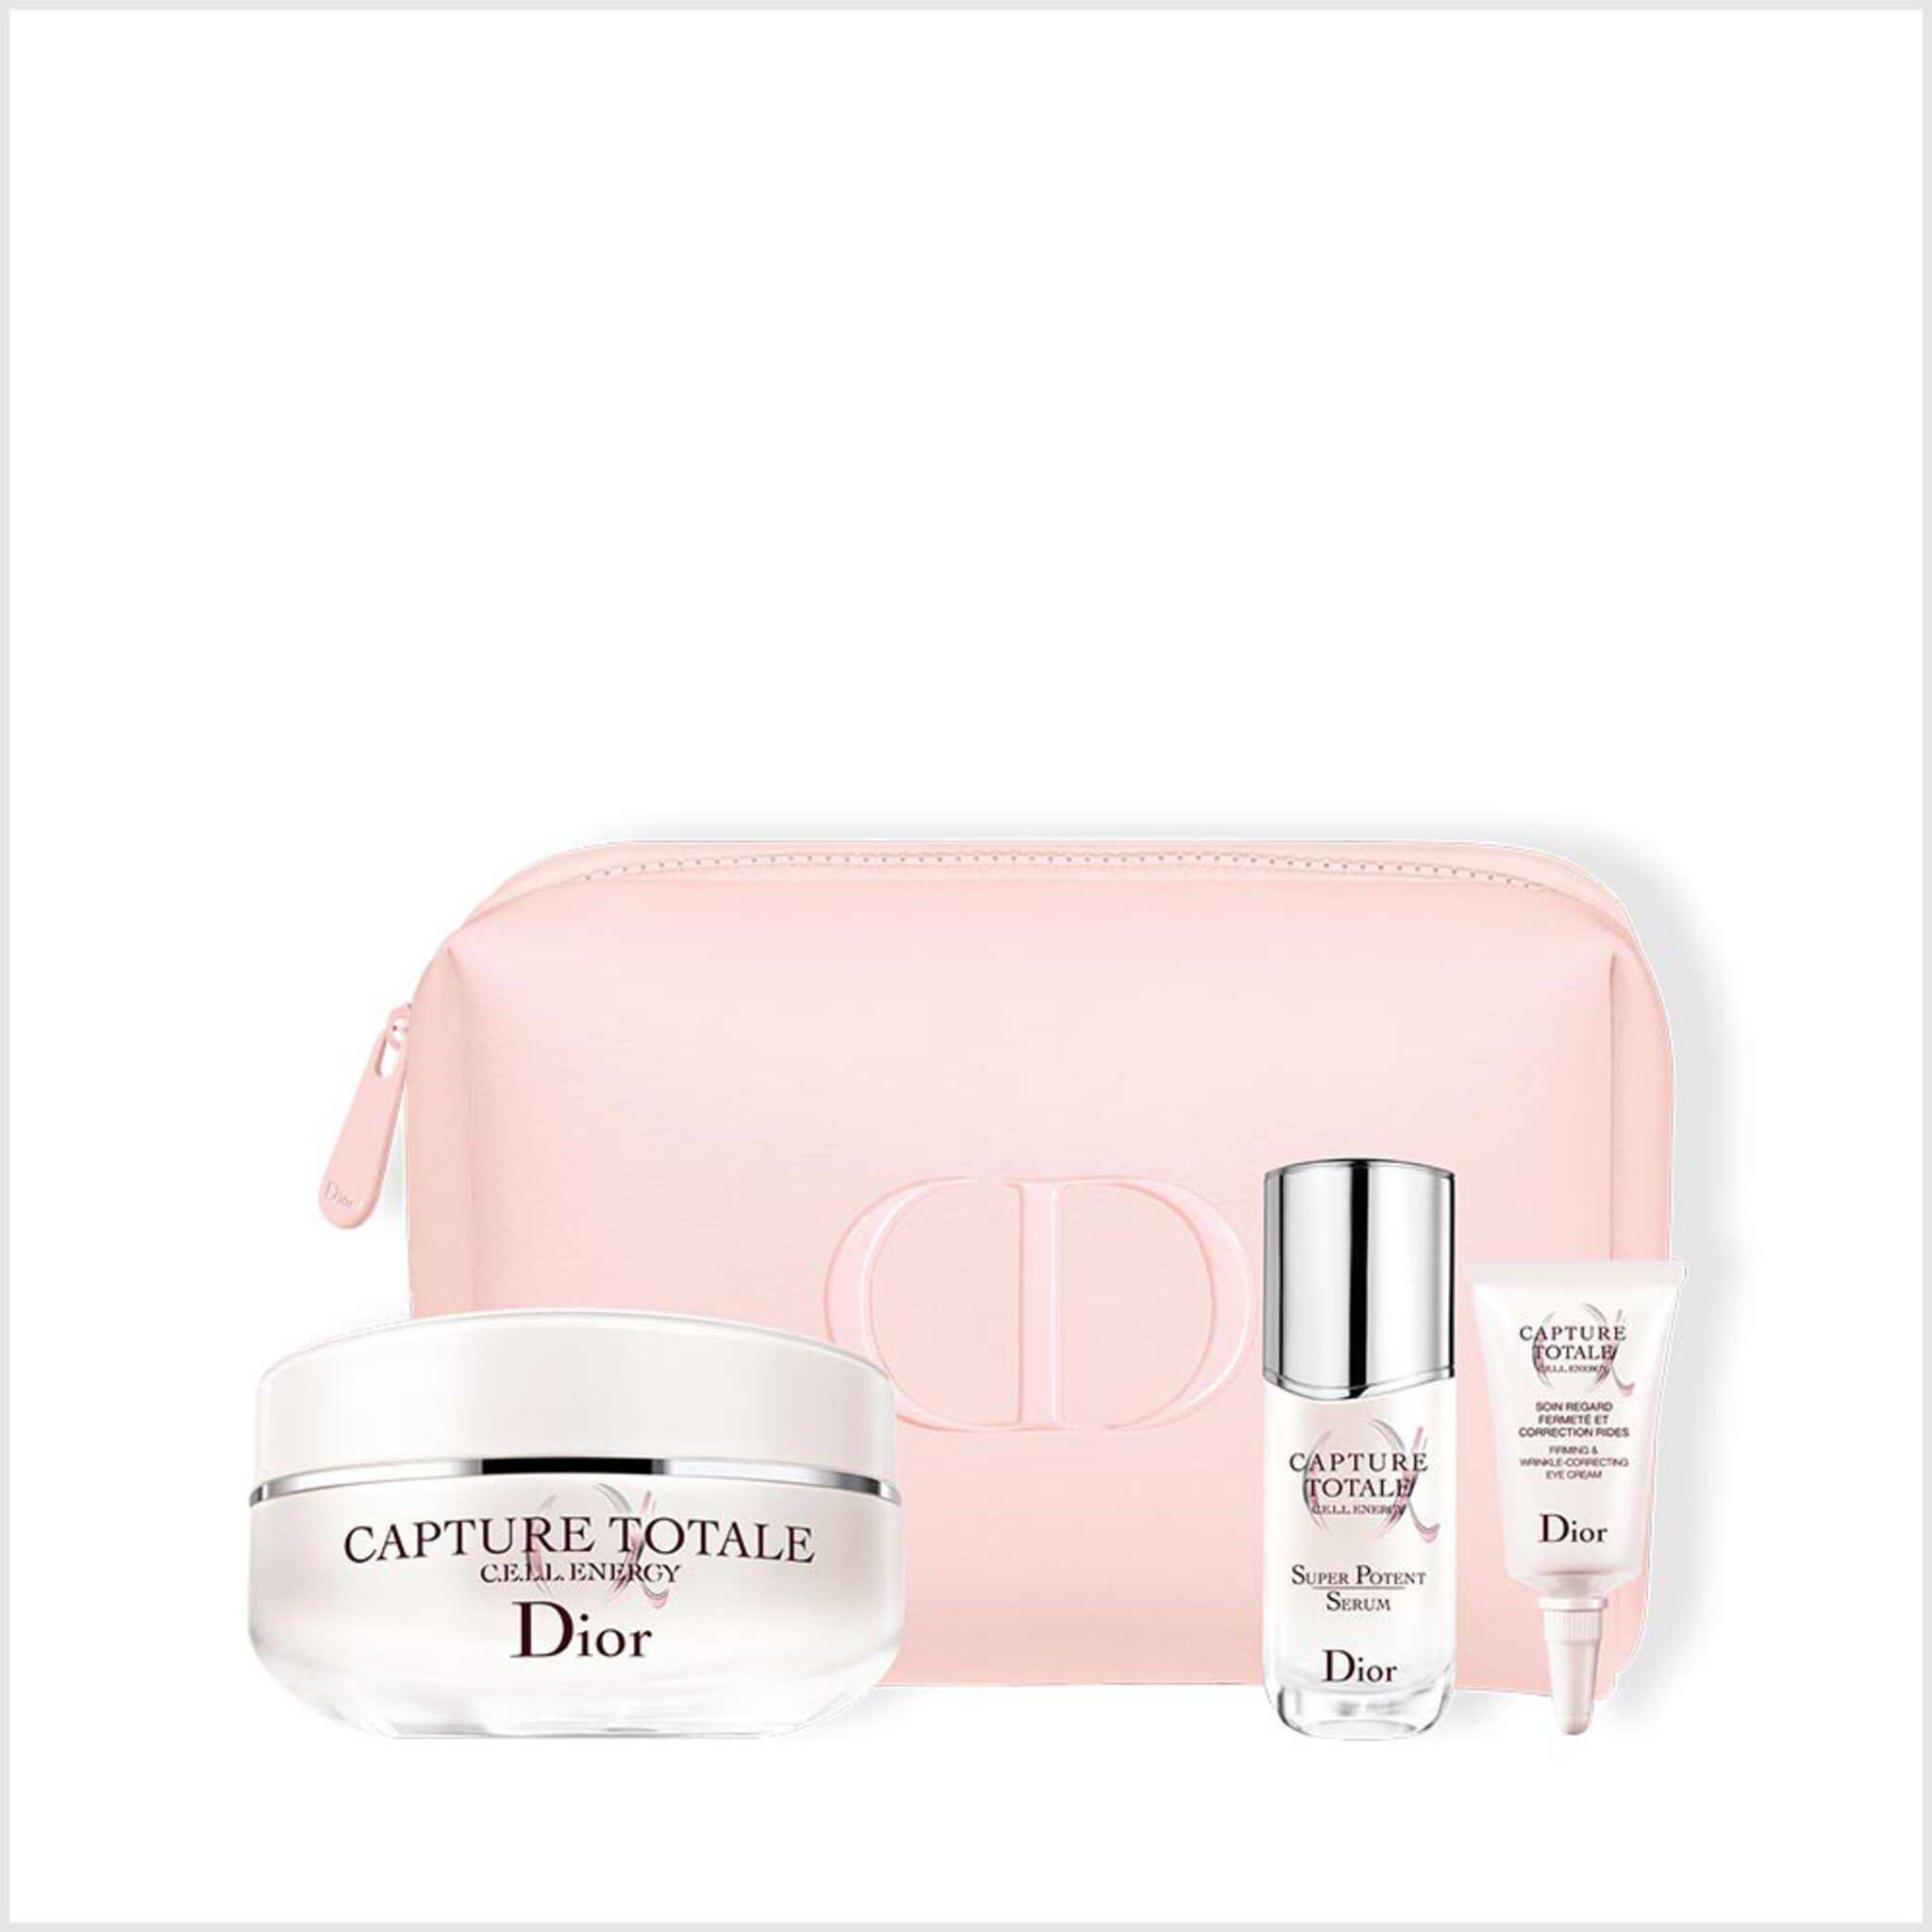 Capture Totale Total Age-Defying Intense Ritual